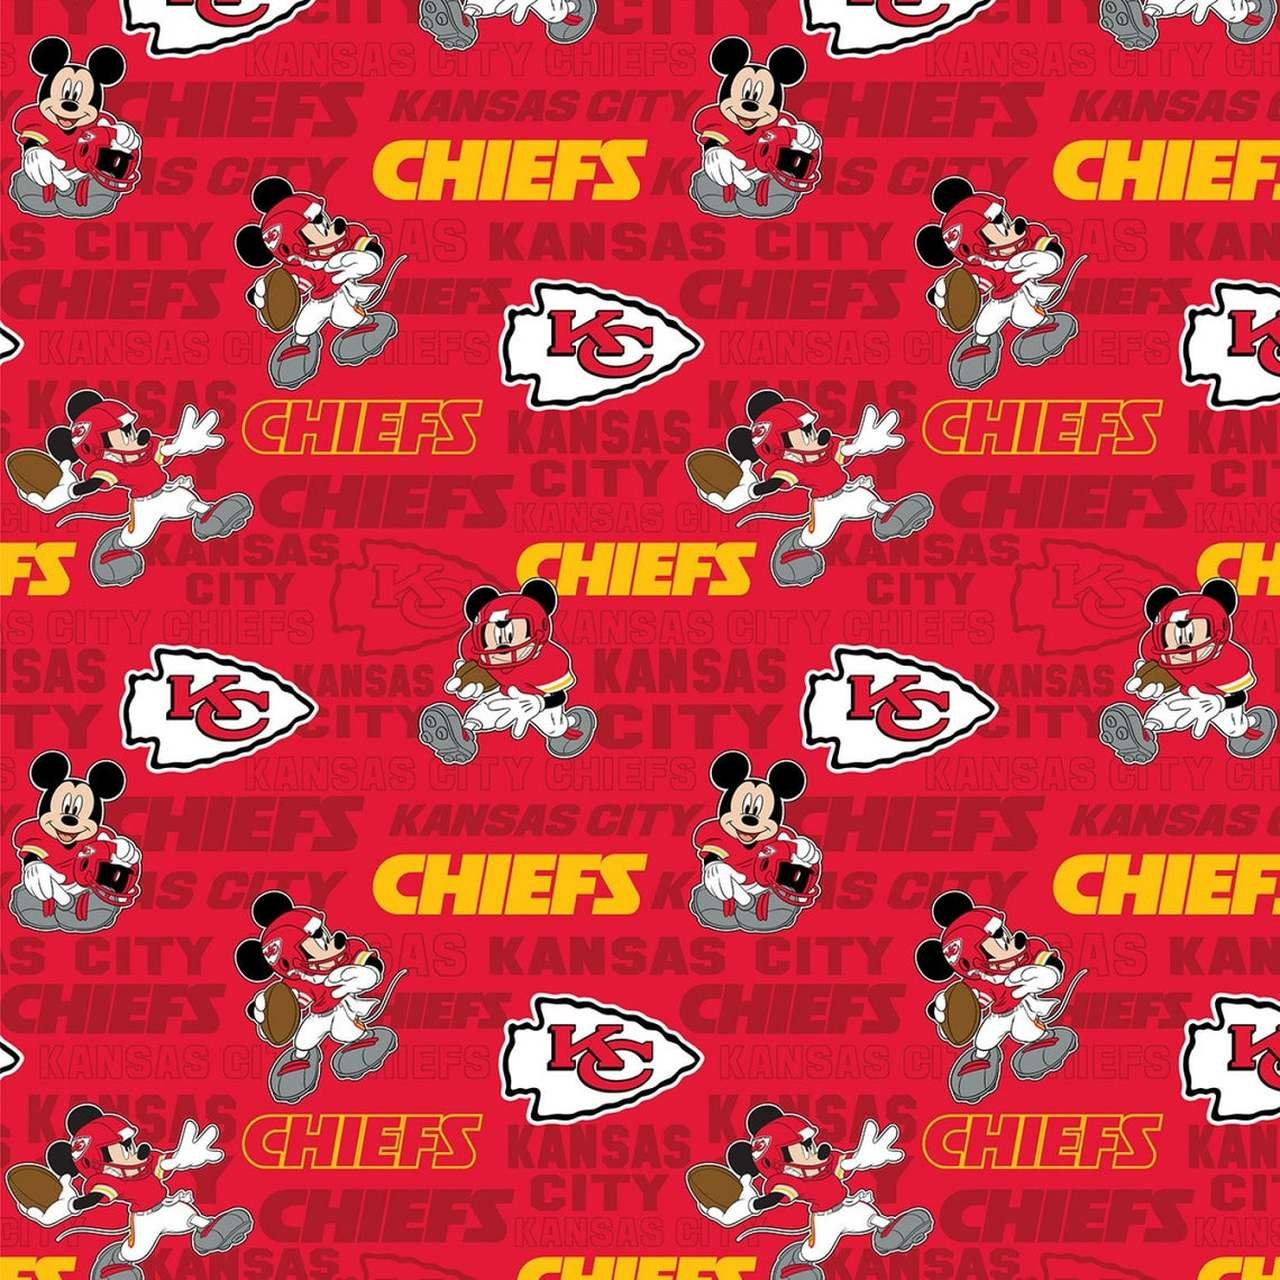 NFL KC CHIEFS 70392 MICKEY MOUSE